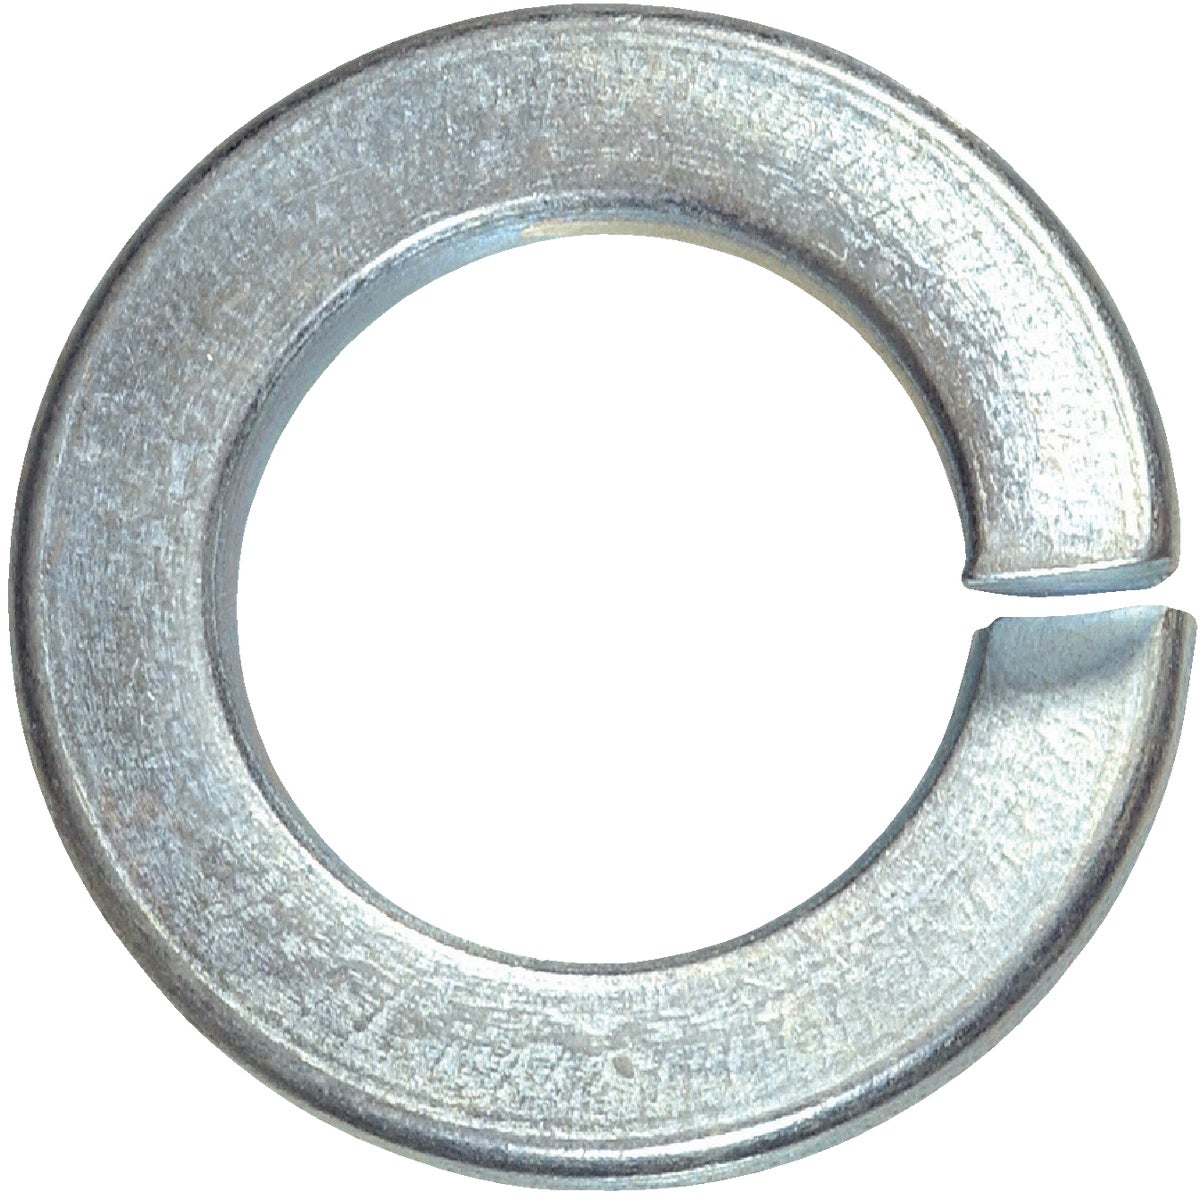 "25PC 5/8"" LOCK WASHER - 300036 by Hillman Fastener"